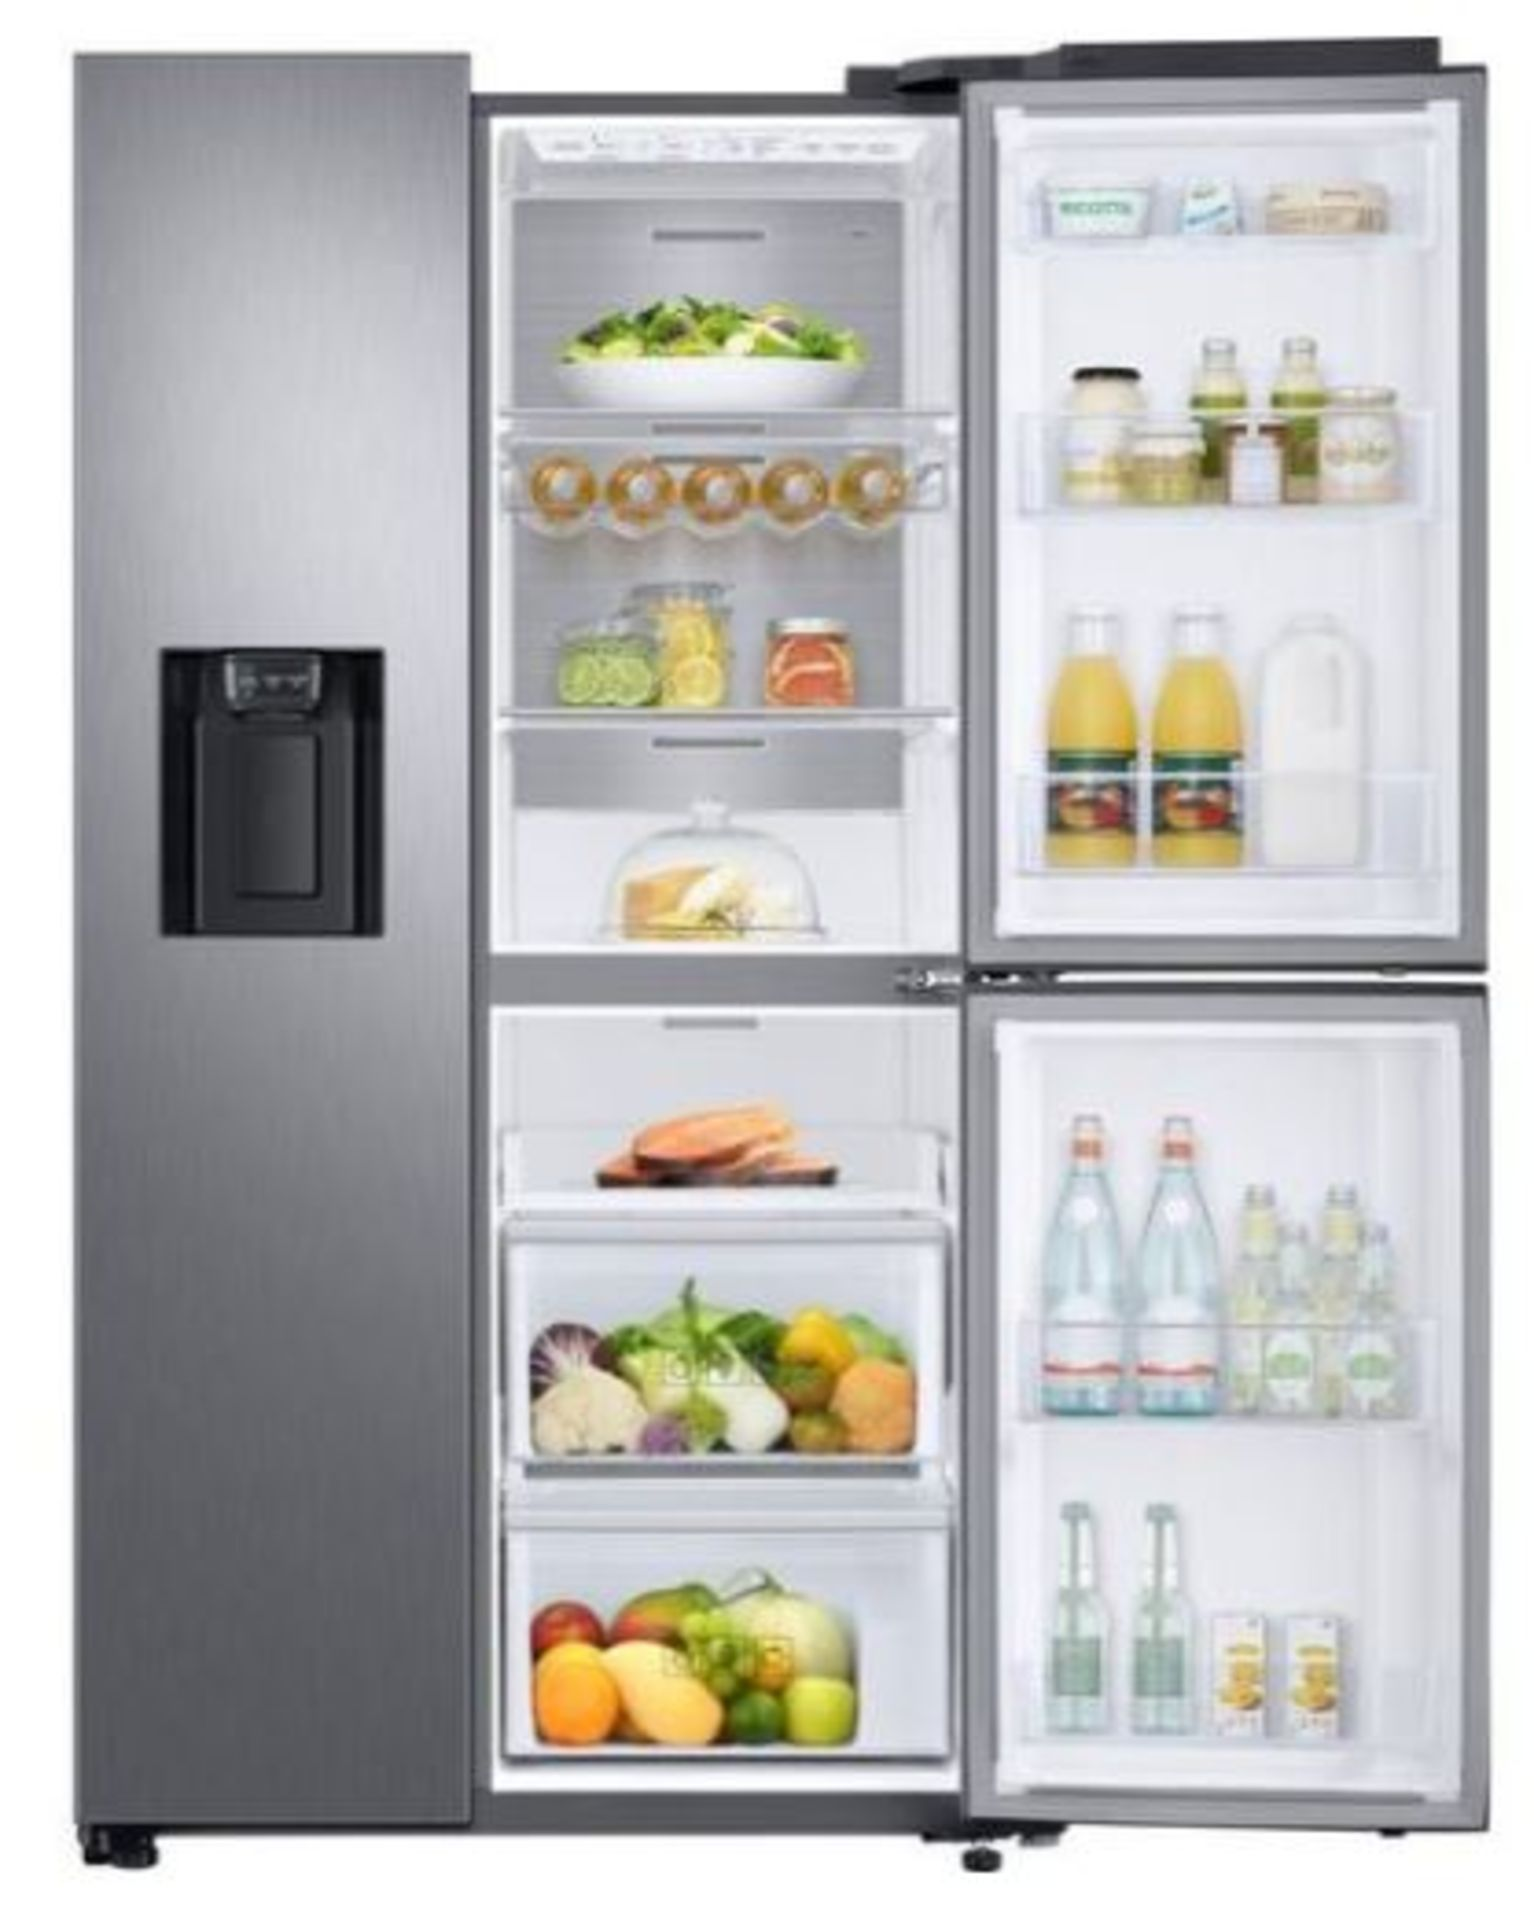 Pallet of 1 Samsung Water & Ice Fridge freezer. Latest selling price £1,769.99* - Image 3 of 10